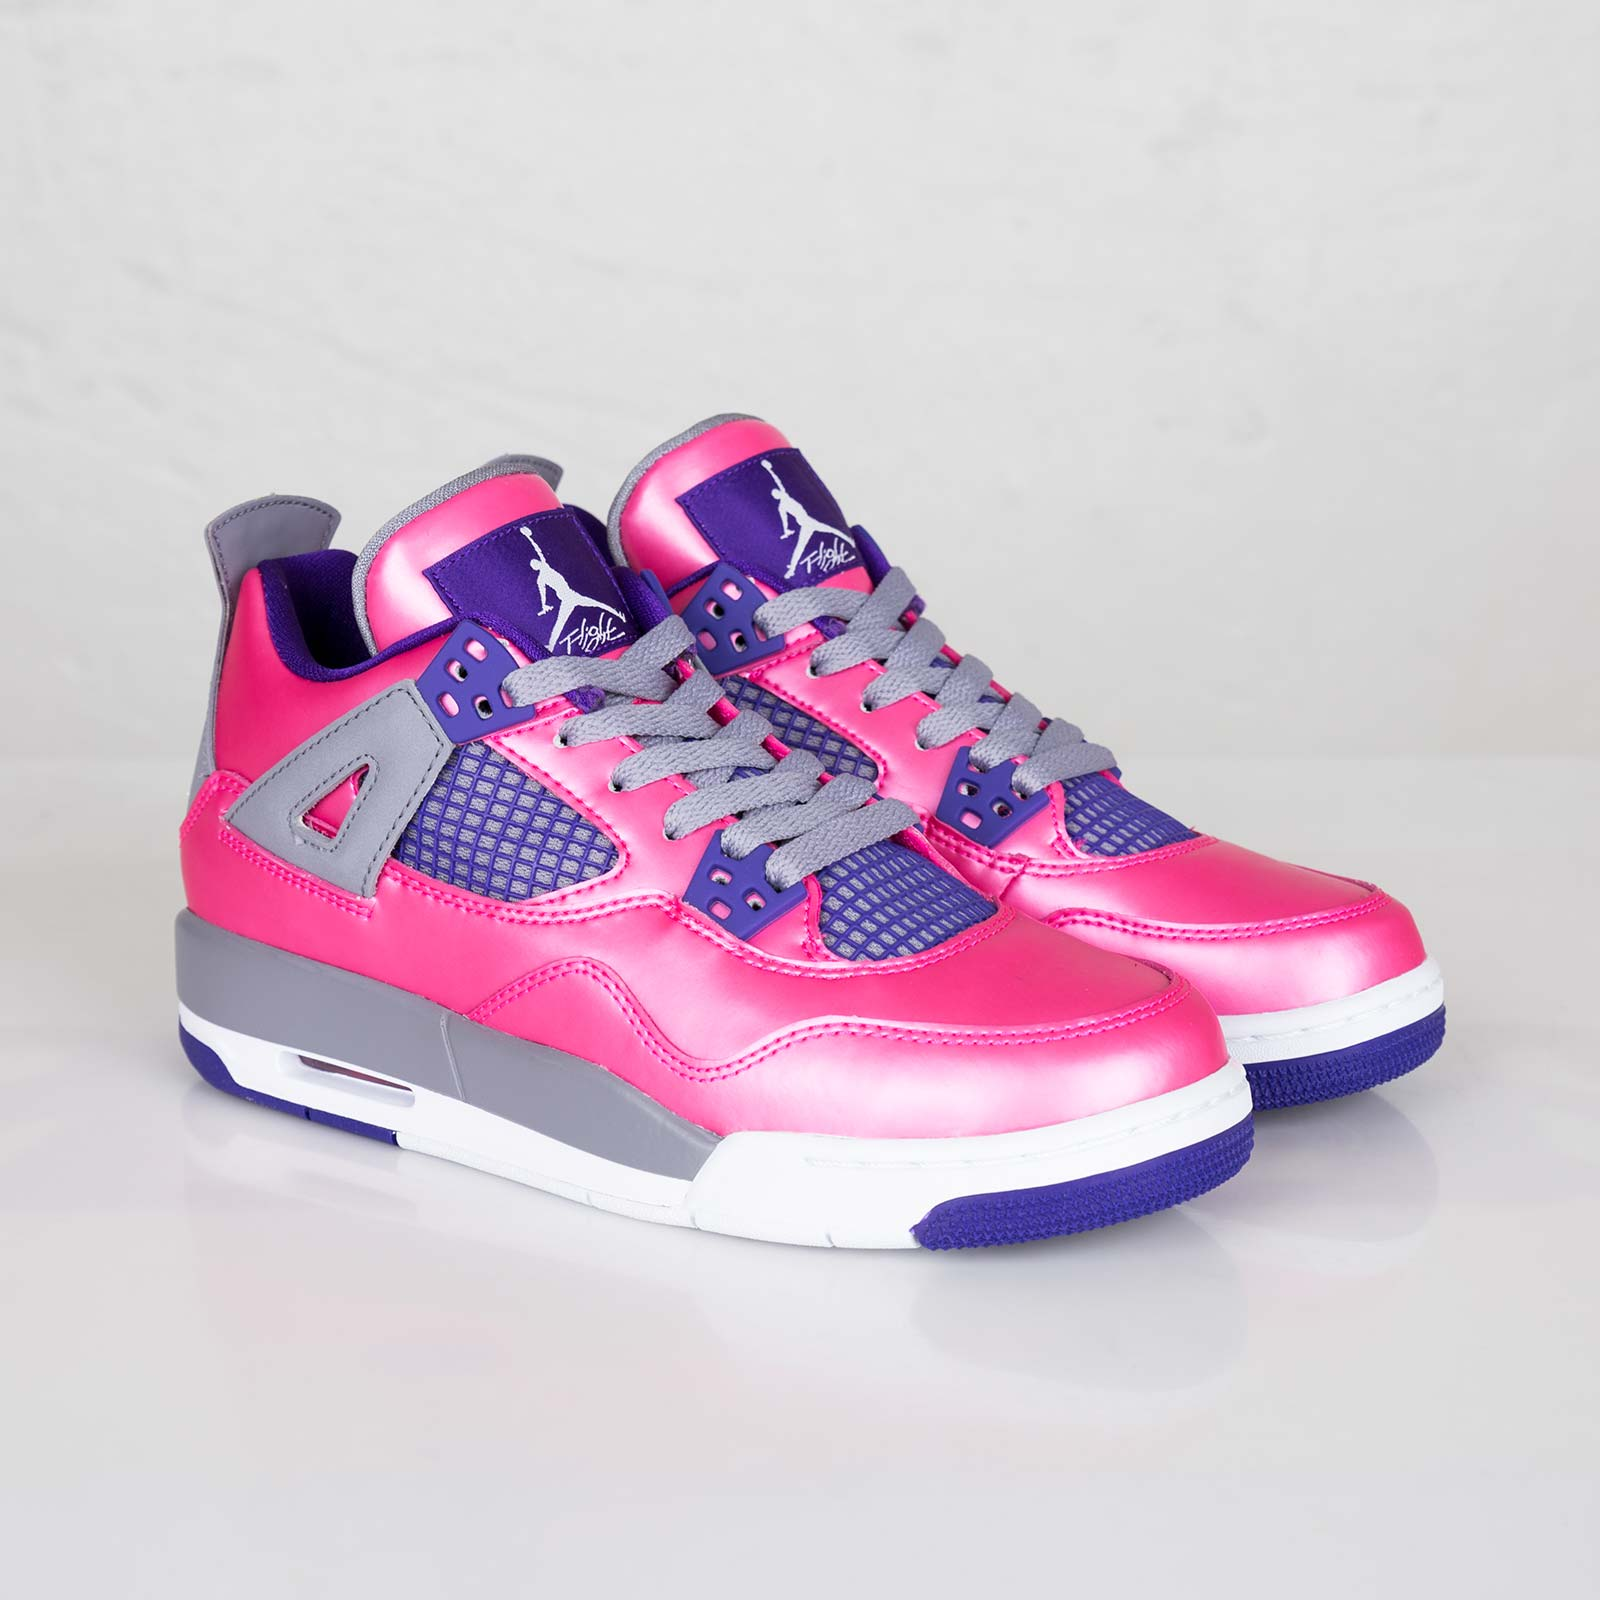 6547d69daa8f Jordan Brand Girls Air Jordan 4 Retro (GS) - 487724-607 ...